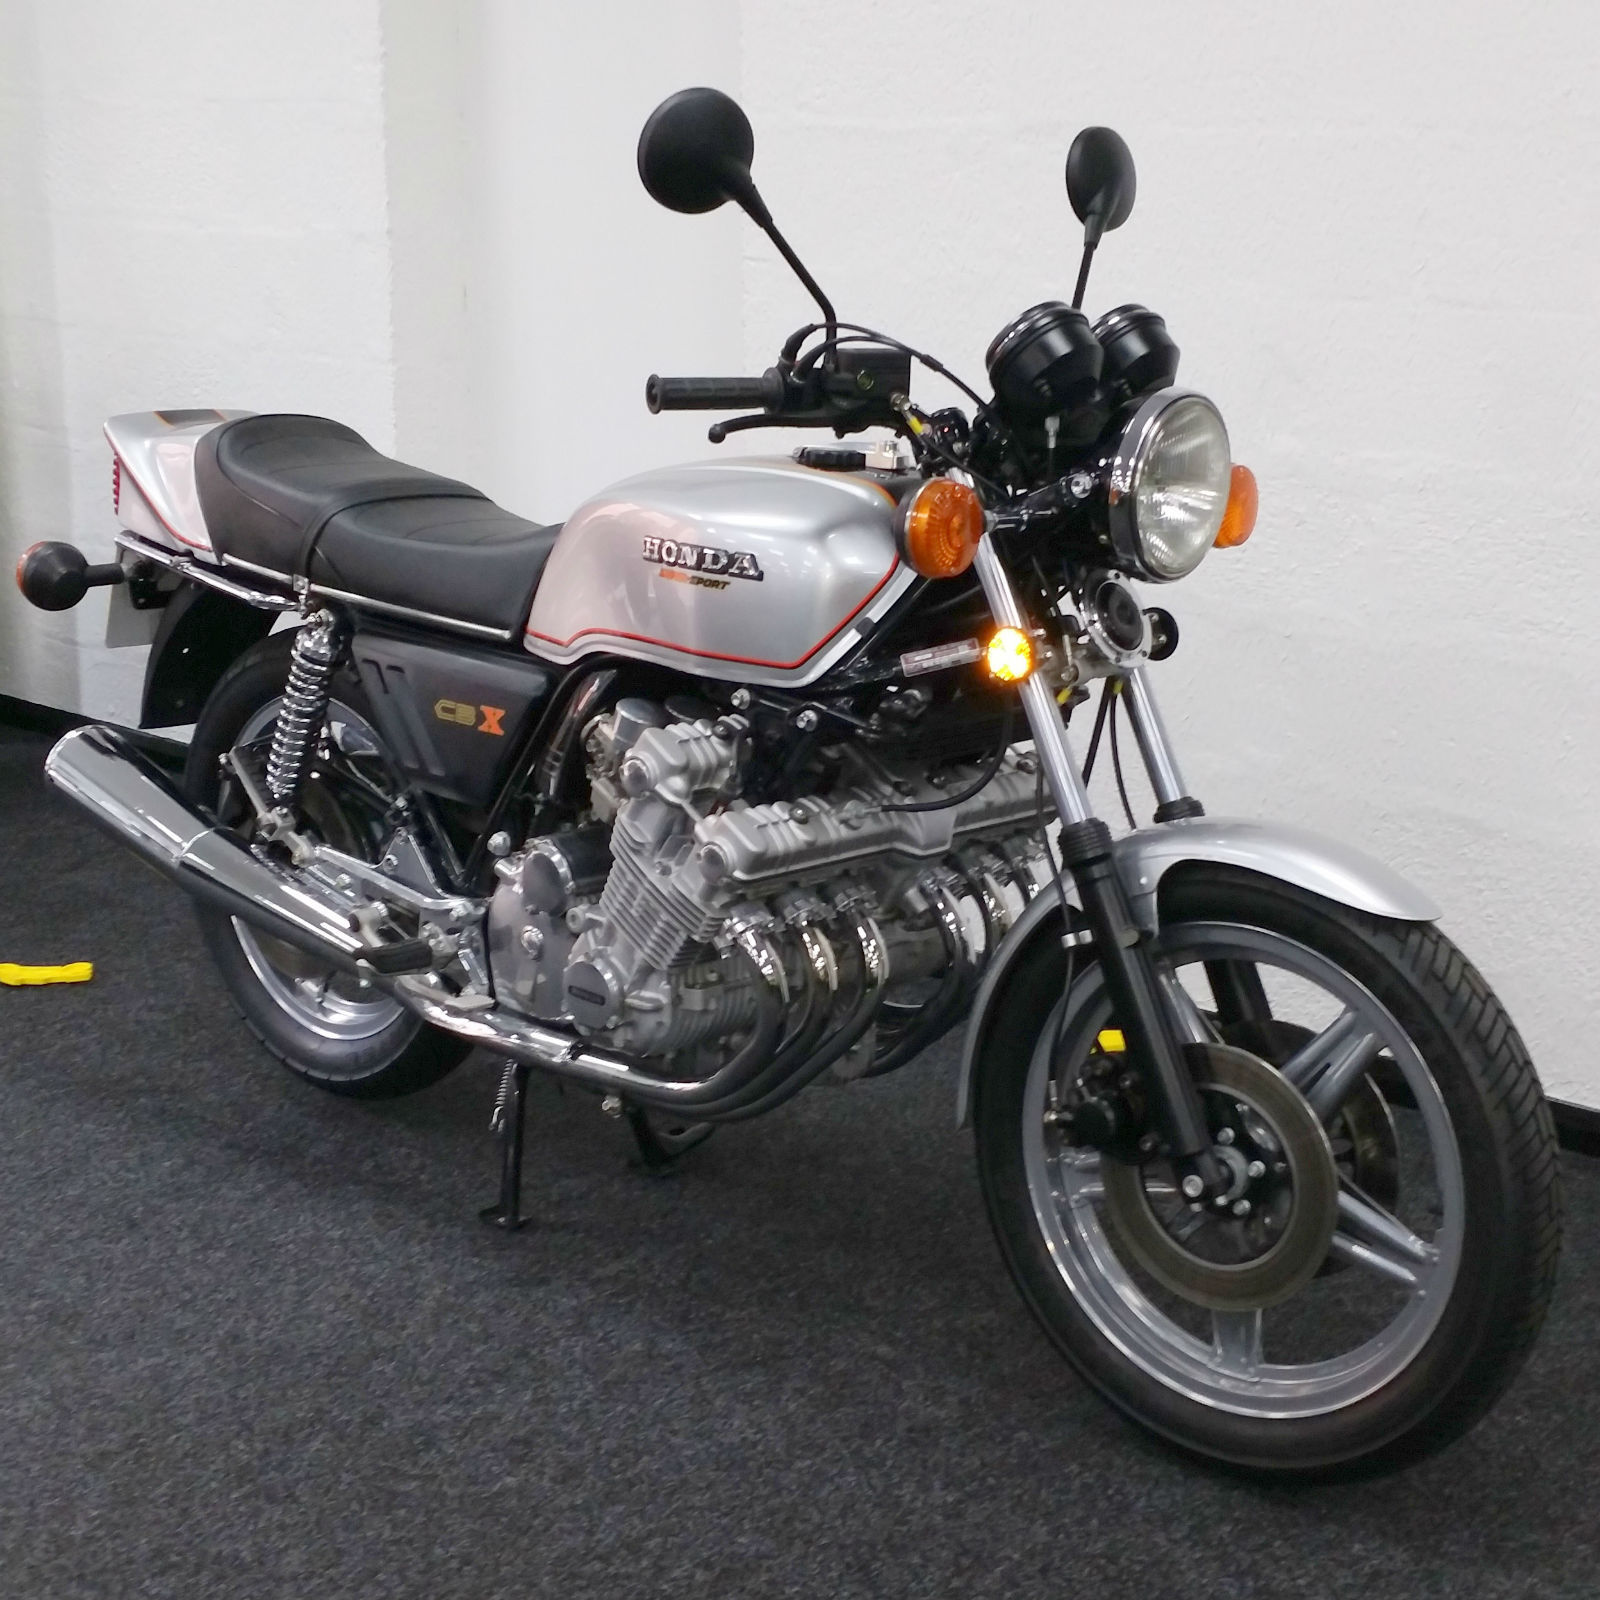 Honda CBX1000 - 1978 - Flashers, Headlight, Mirrors, Tank and Side Panels.